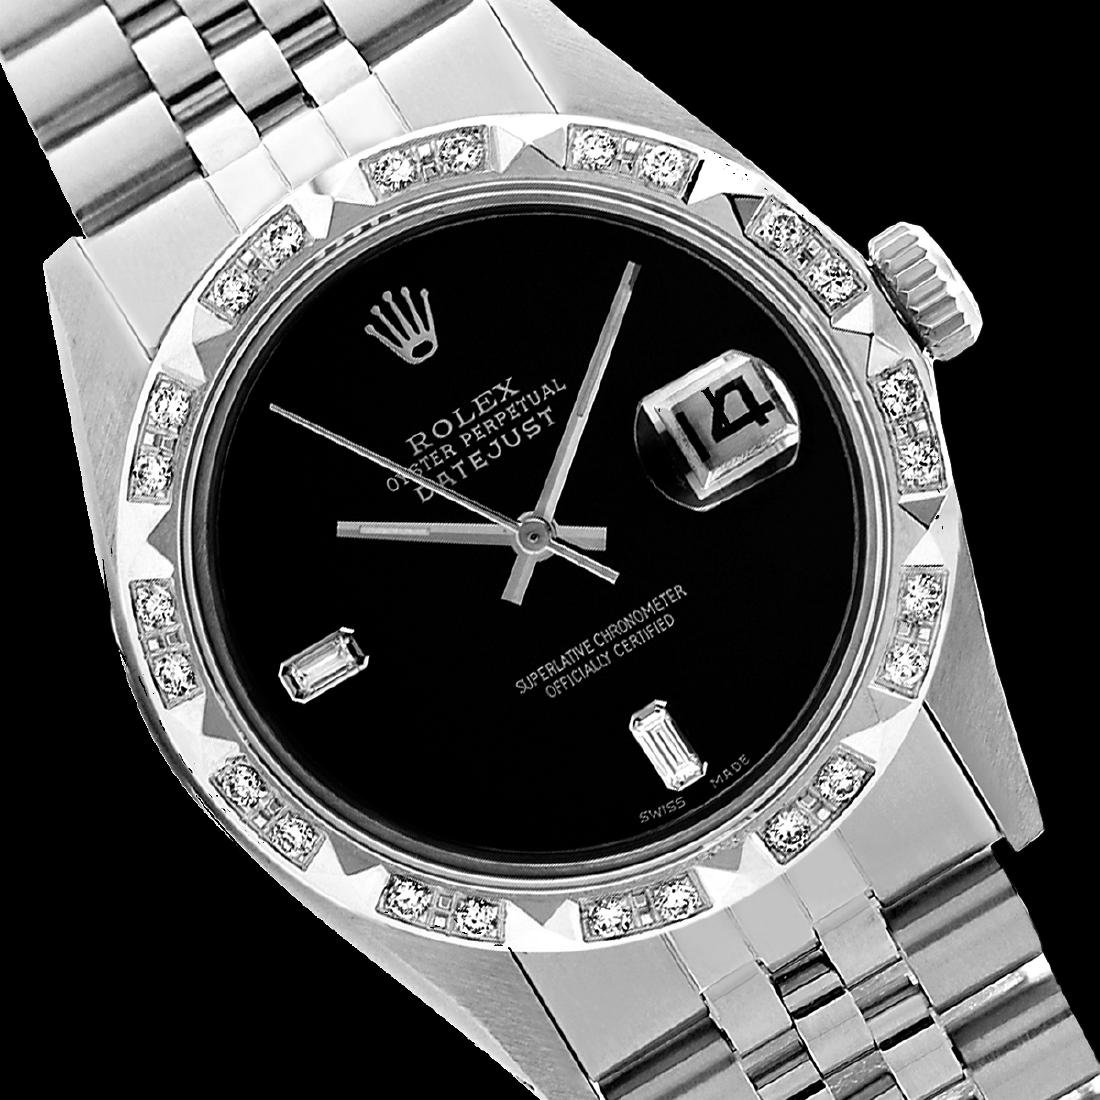 Rolex Men's Stainless Steel, QuickSet, Diam Dial with